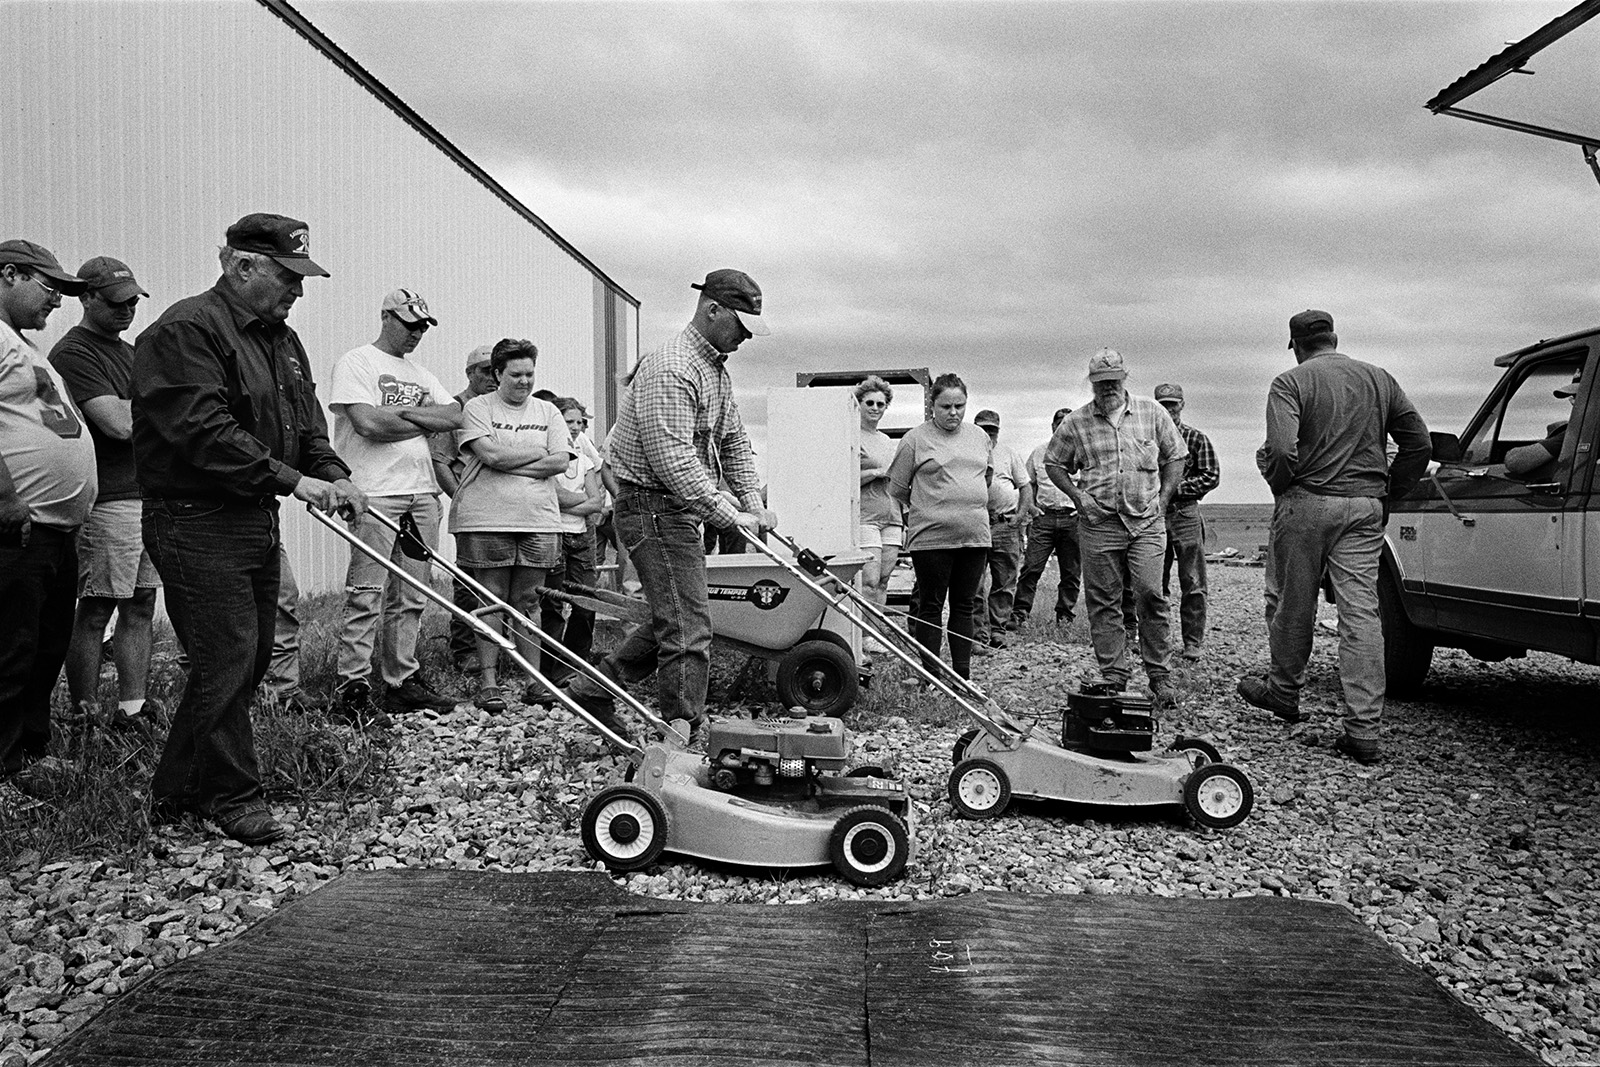 Farm Auction, Hettinger, North Dakota, 2005